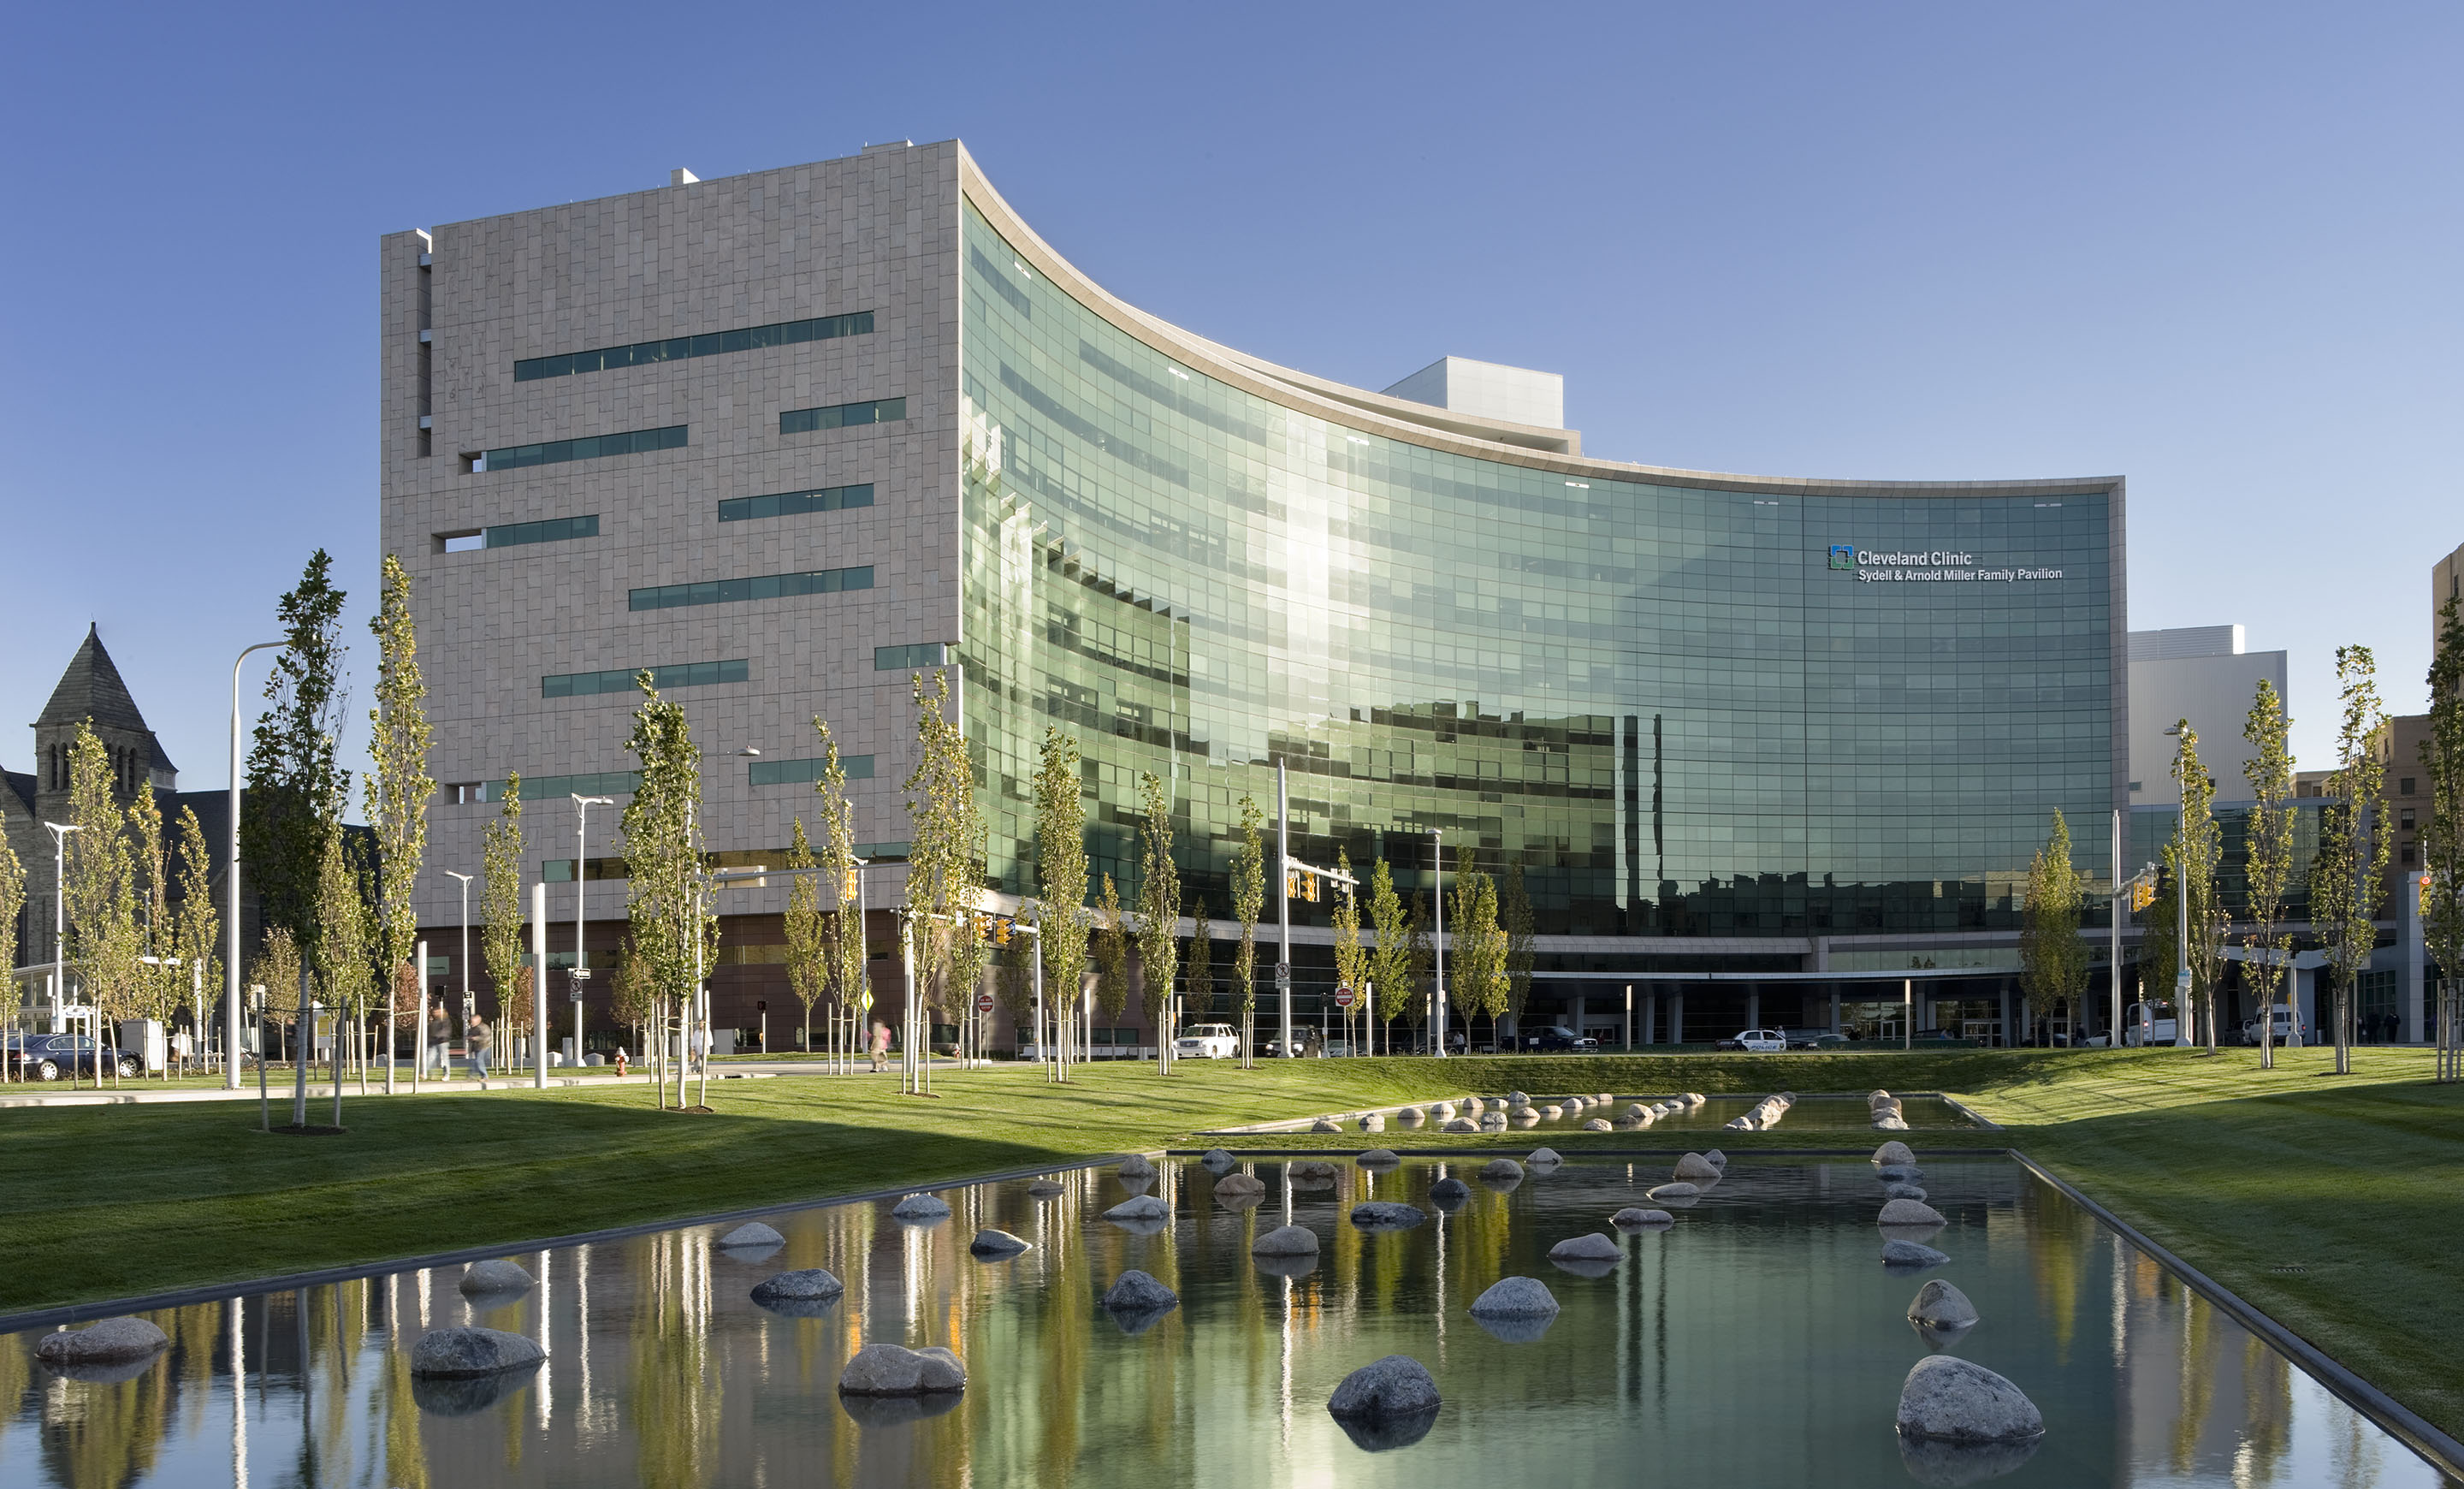 Cleveland Clinic Main Campus